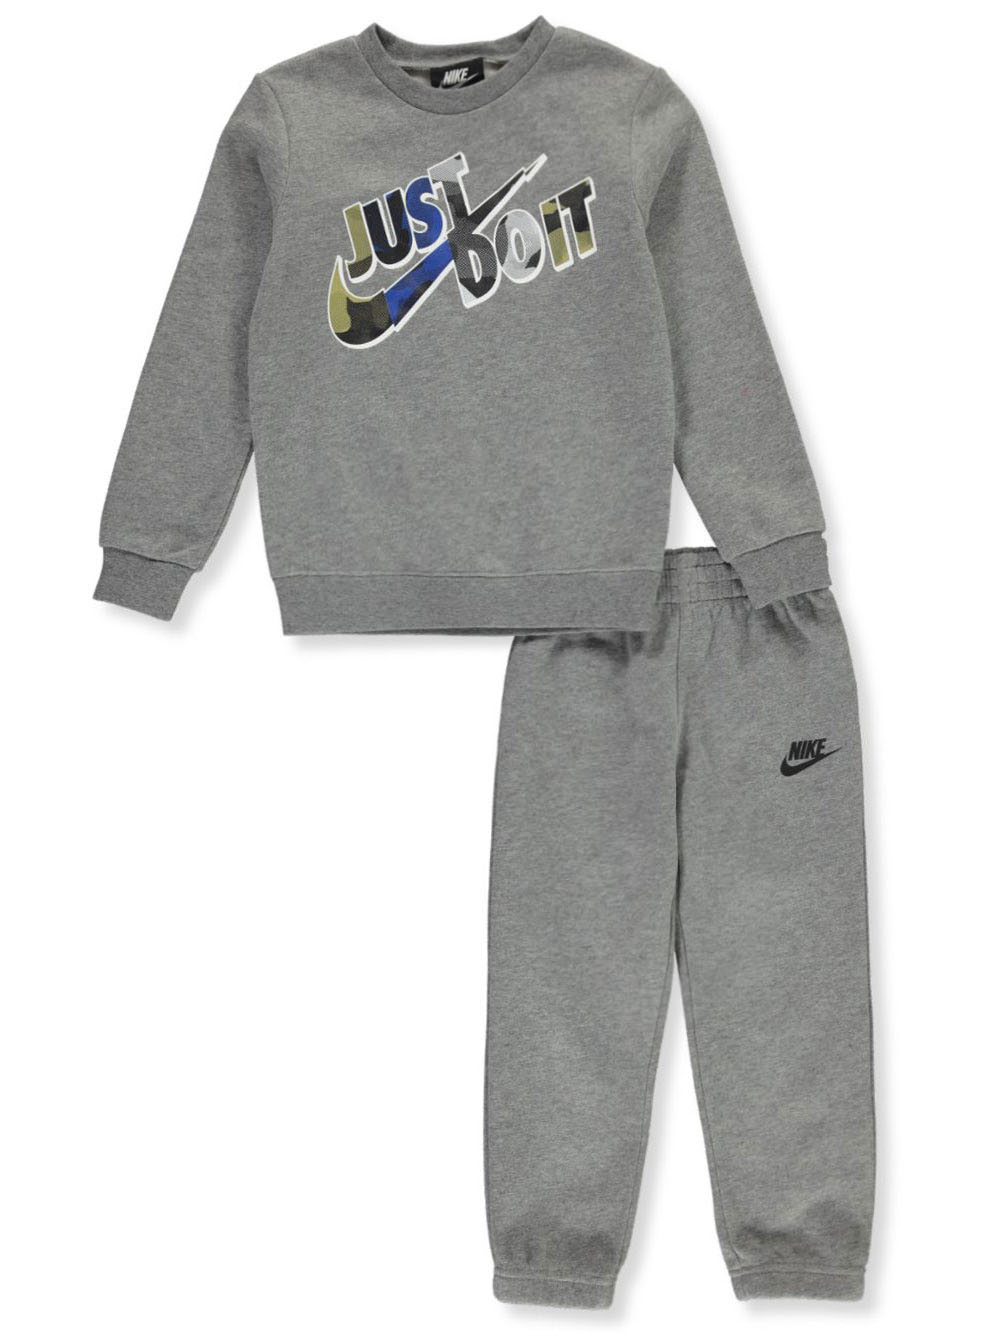 Boys Carbon Heather Sets